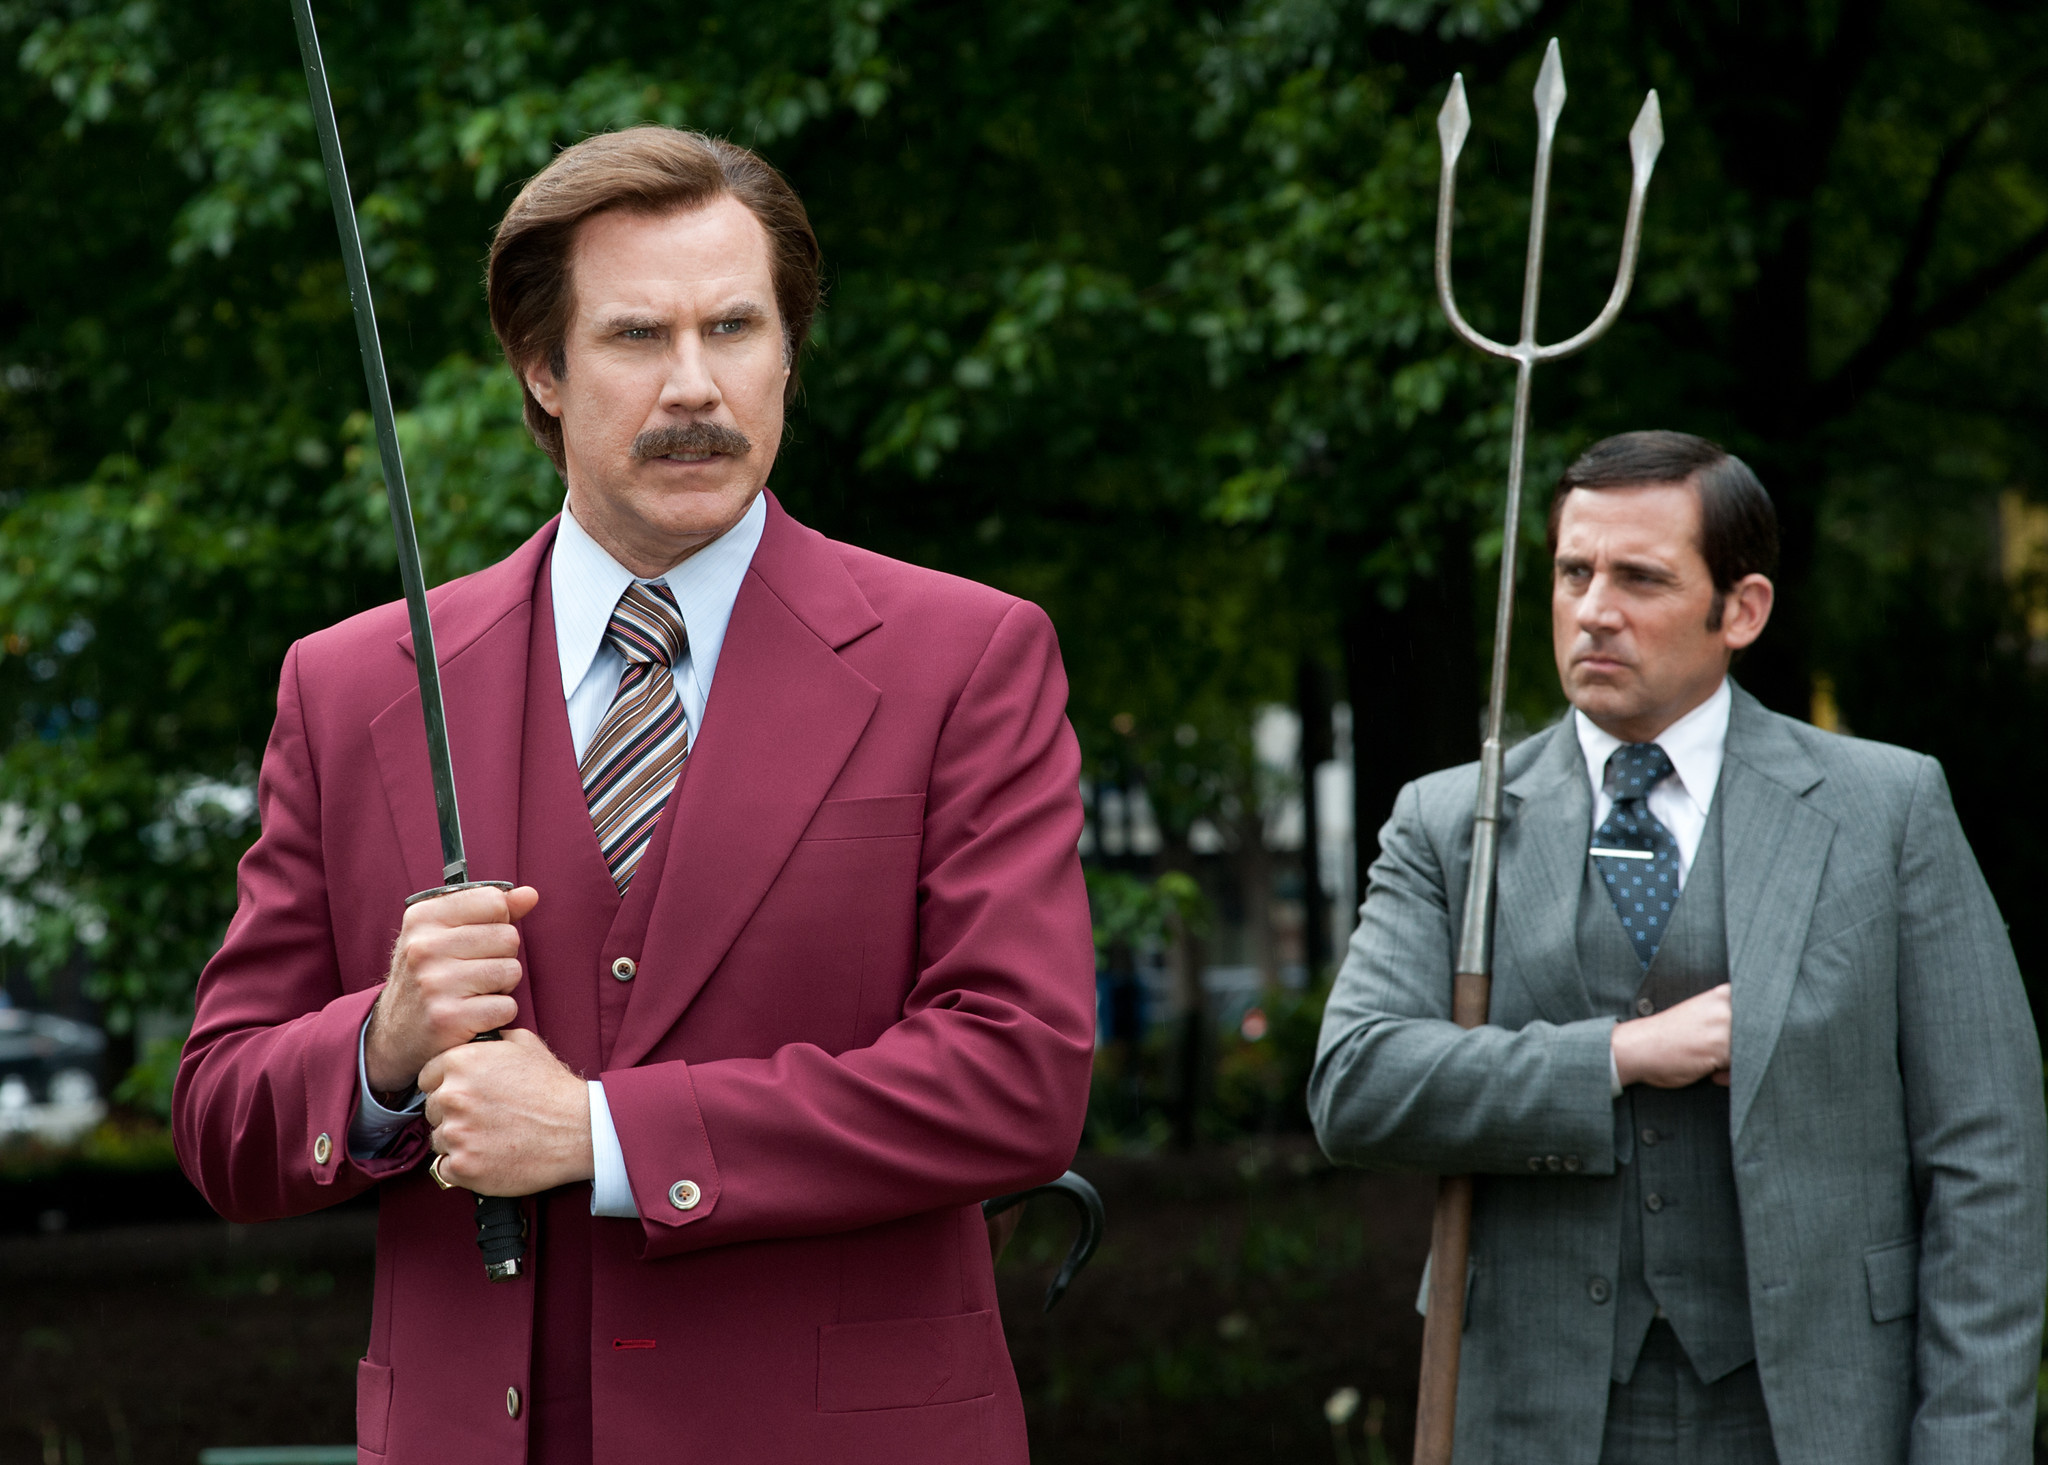 'Anchorman 2' makes $13.2 million in its first two days